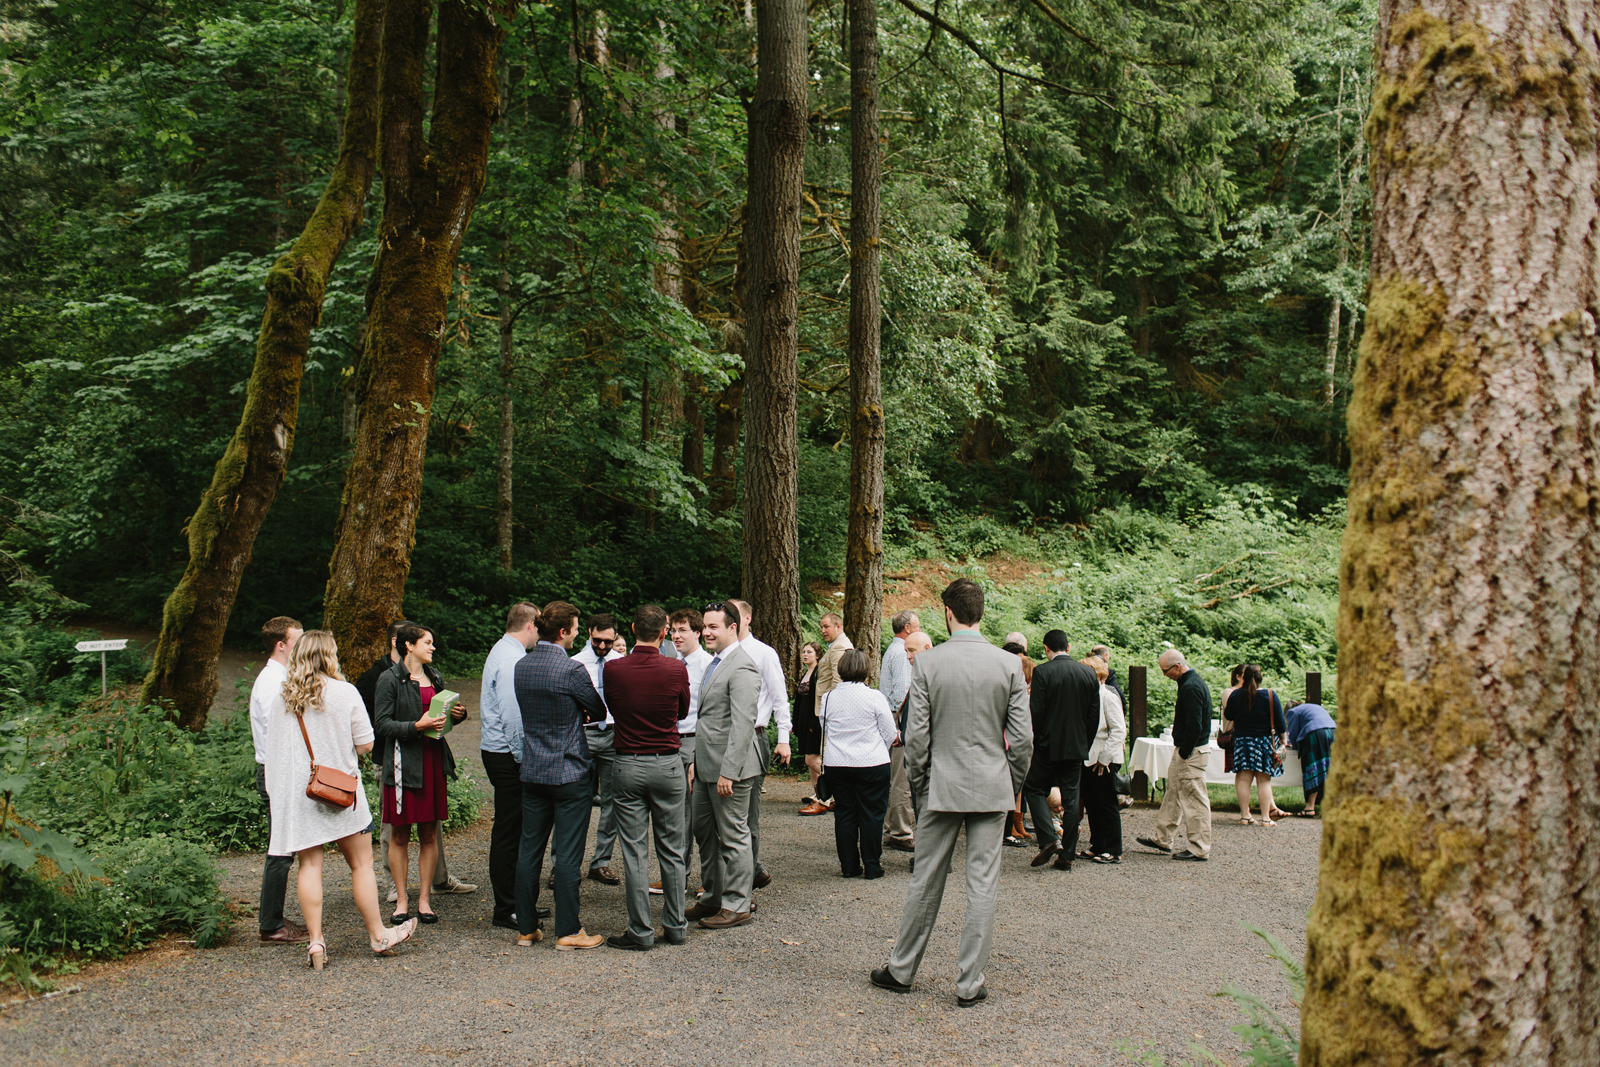 Wedding guests arrive at Bridal Veil Lakes in Corbett, OR